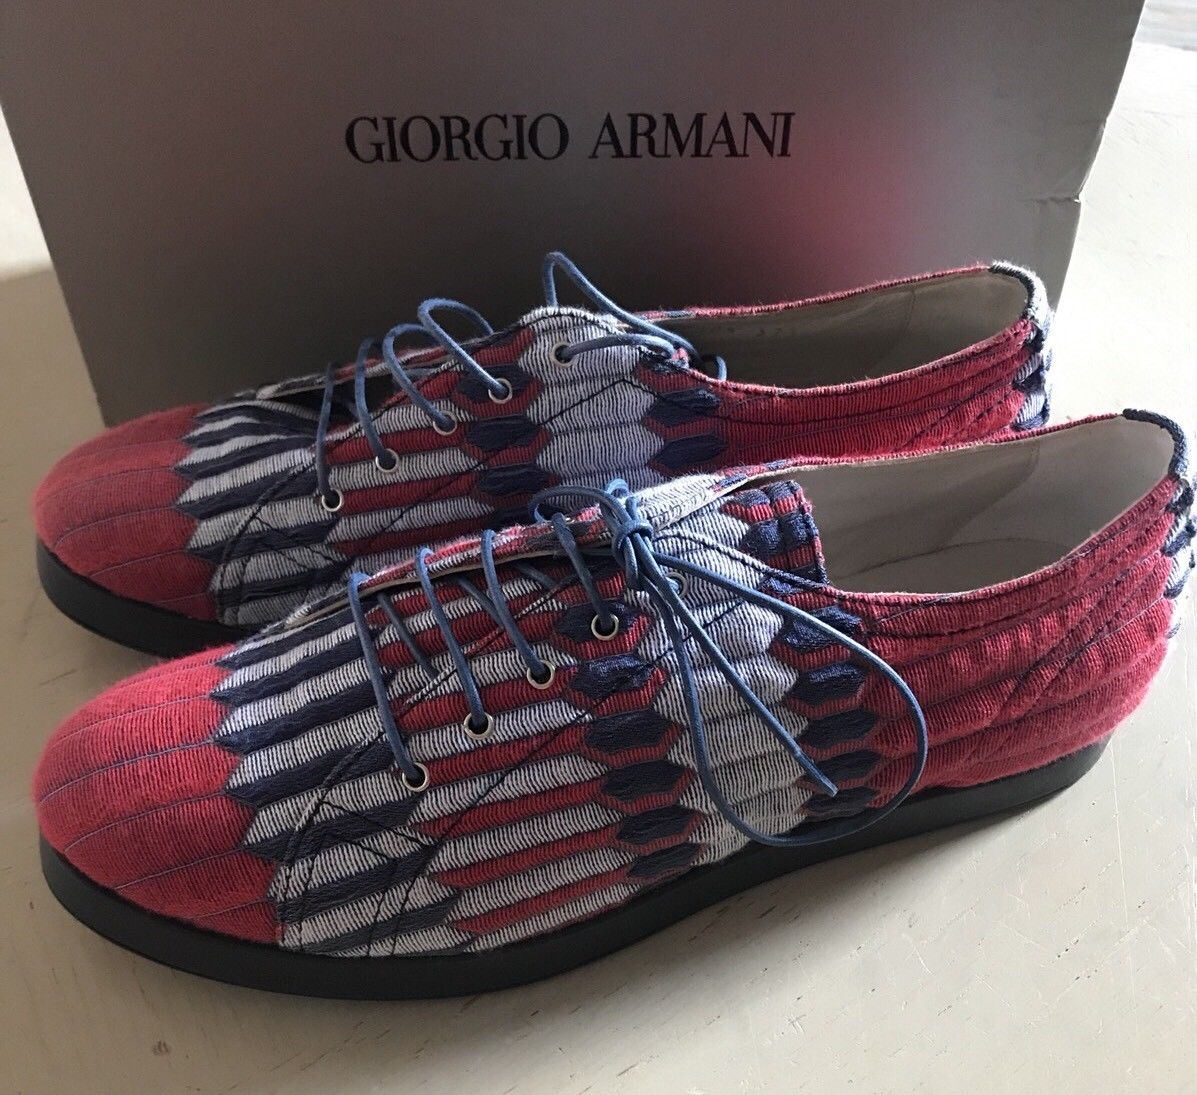 NIB $825 Giorgio Armani Women's  Flats Knight Shoes Sneakers Blue/Red 9.5 US - BAYSUPERSTORE